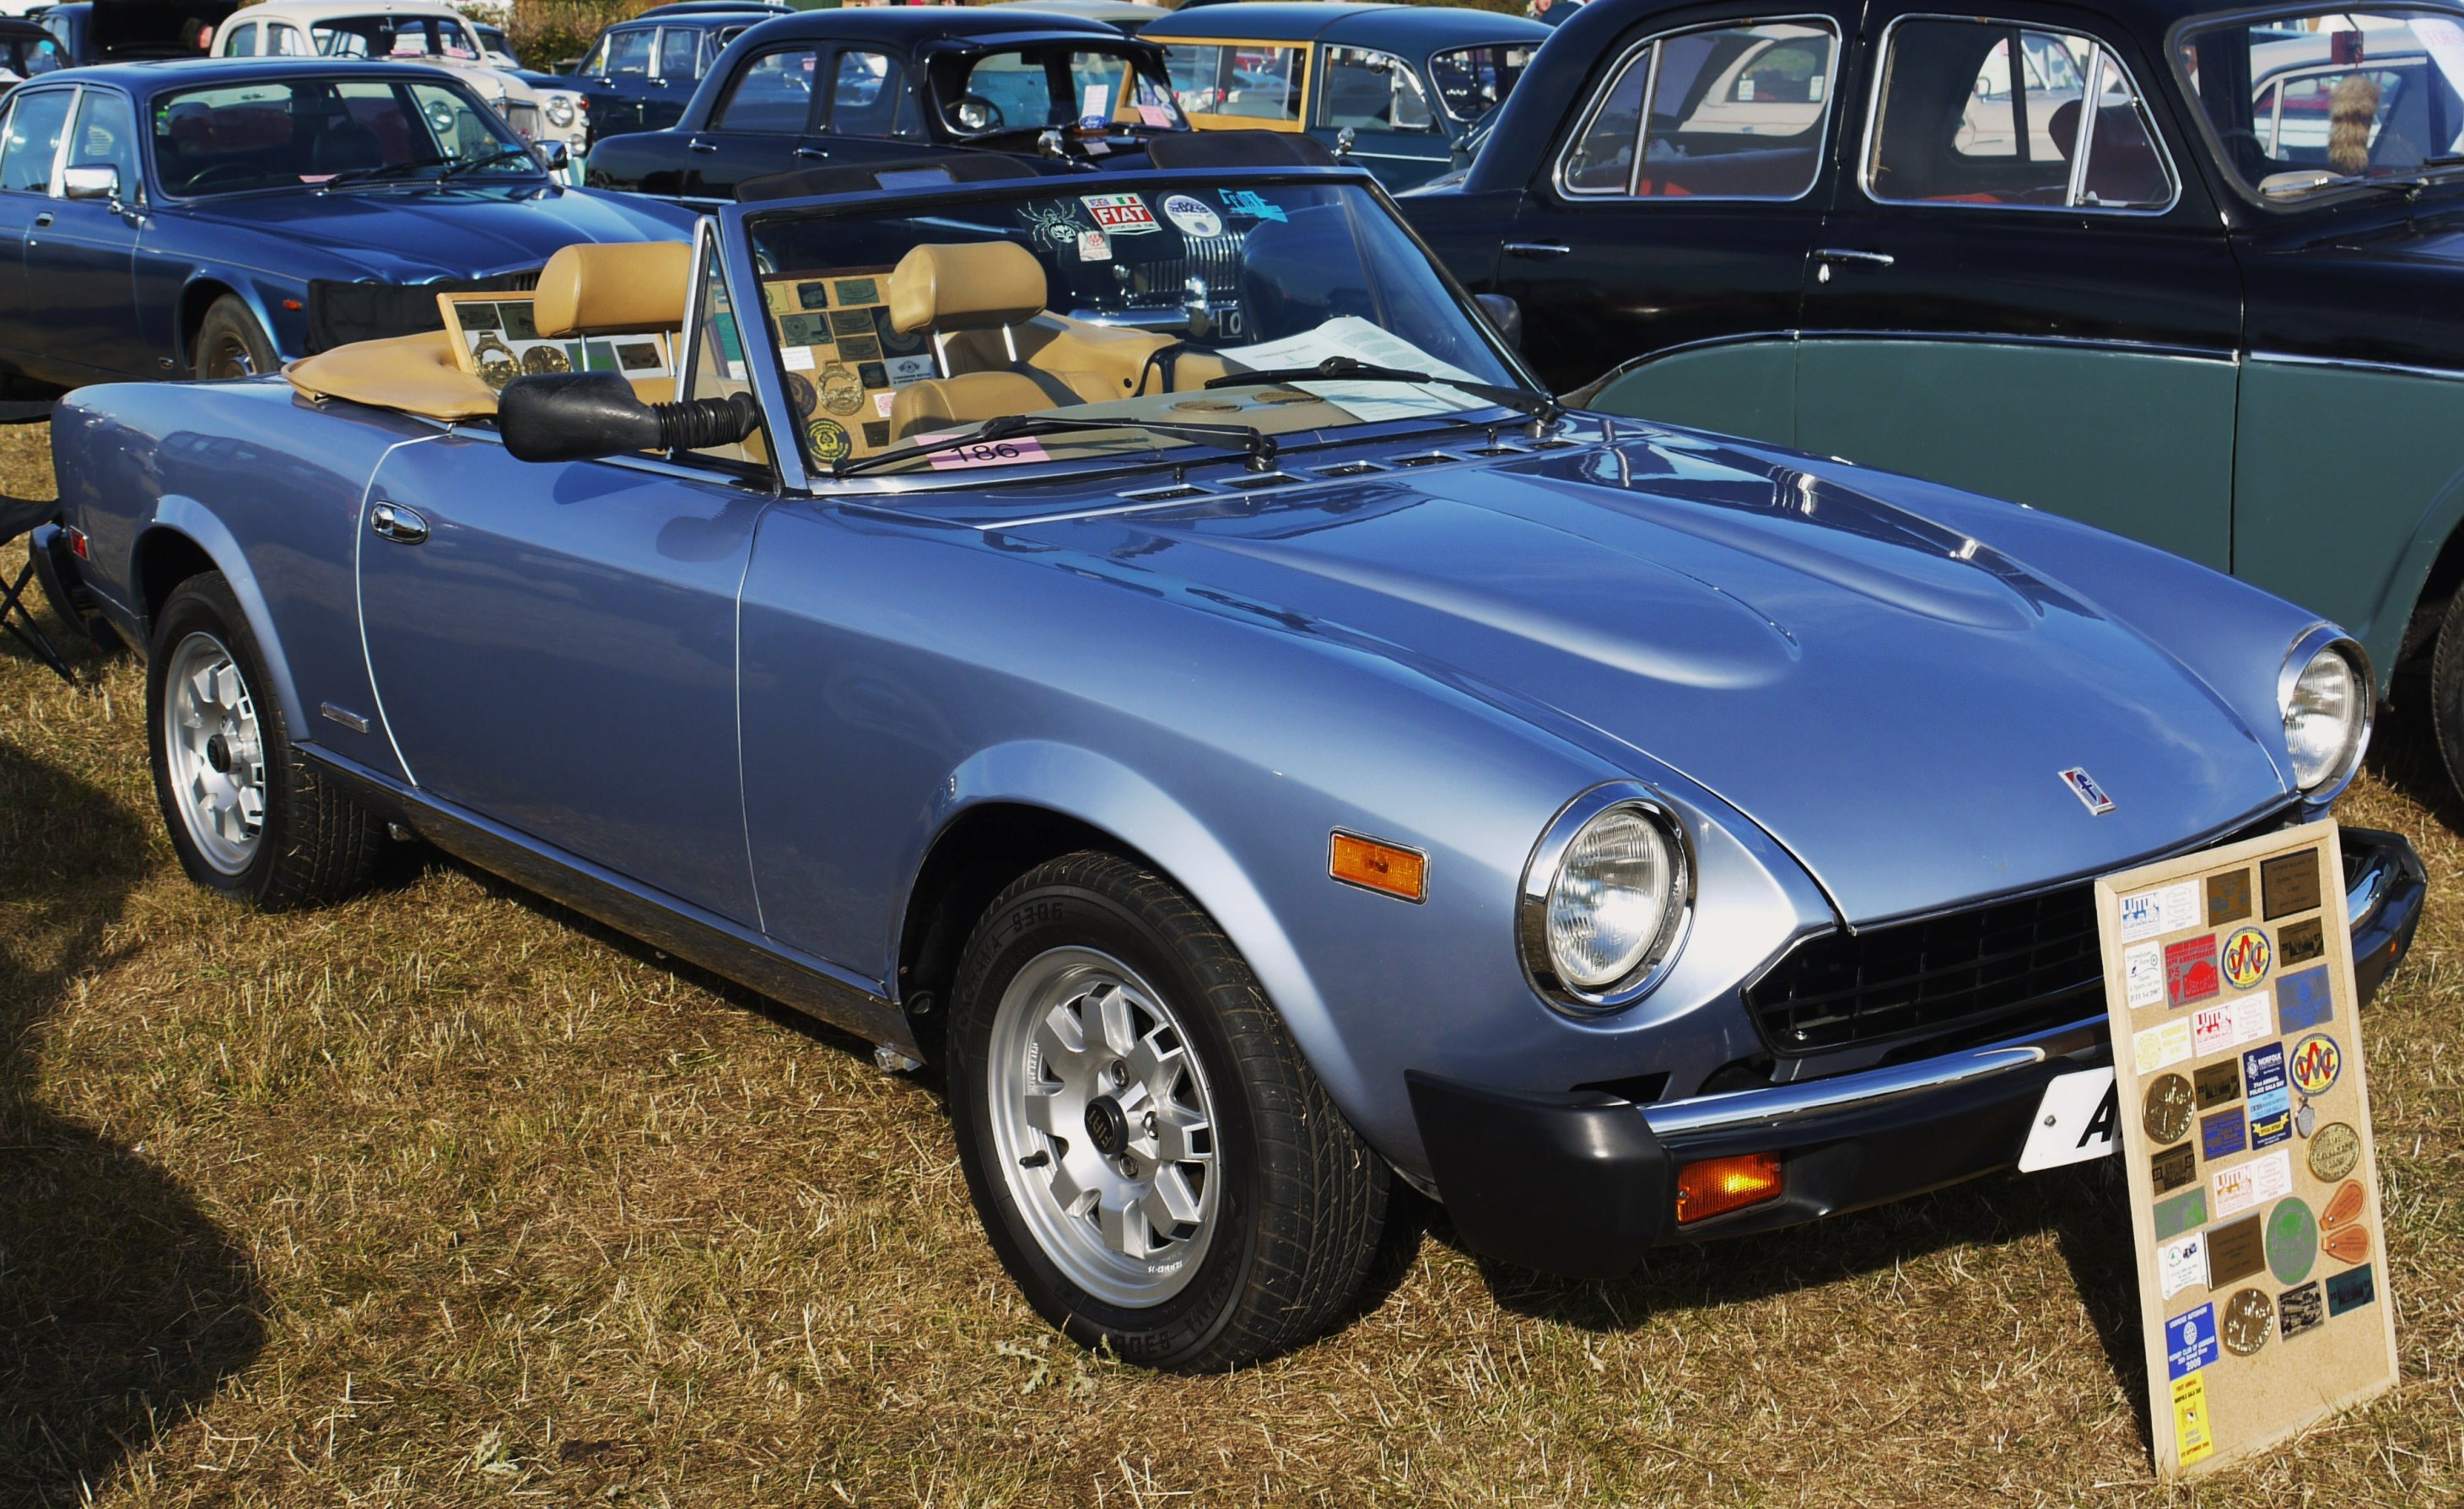 Fiat_Spider_-_Flickr_-_mick_-_Lumix.jpg